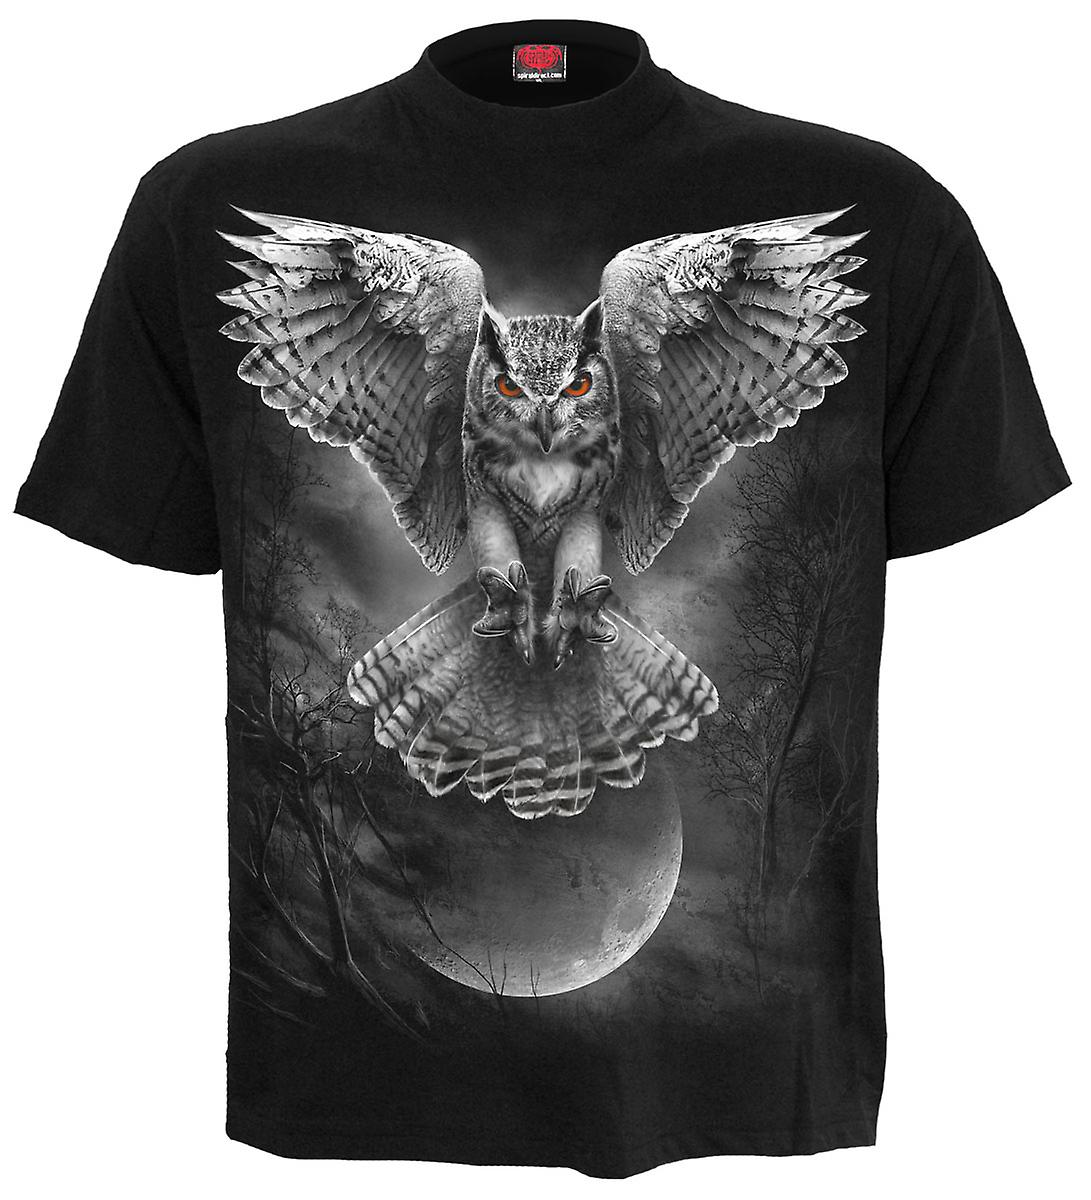 Spiral Direct Gothic WINGS OF WISDOM - T-Shirt Black|Owl|Fashion|Moon|Forest